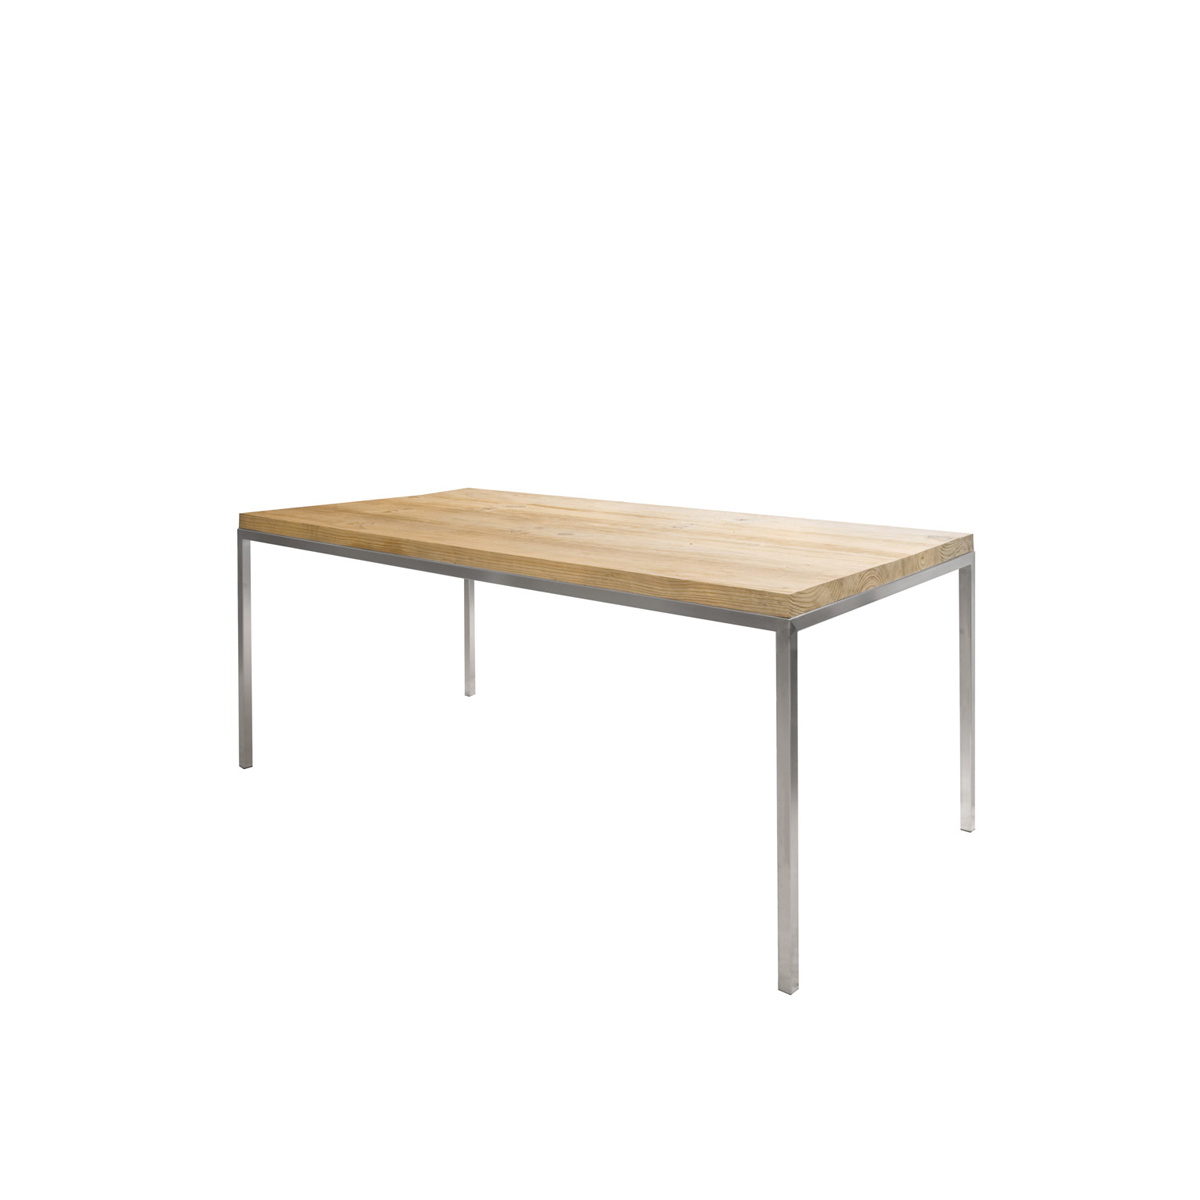 Popular Oak Top On Stainless Steel Frame Inside Dining Tables With Brushed Stainless Steel Frame (View 7 of 30)